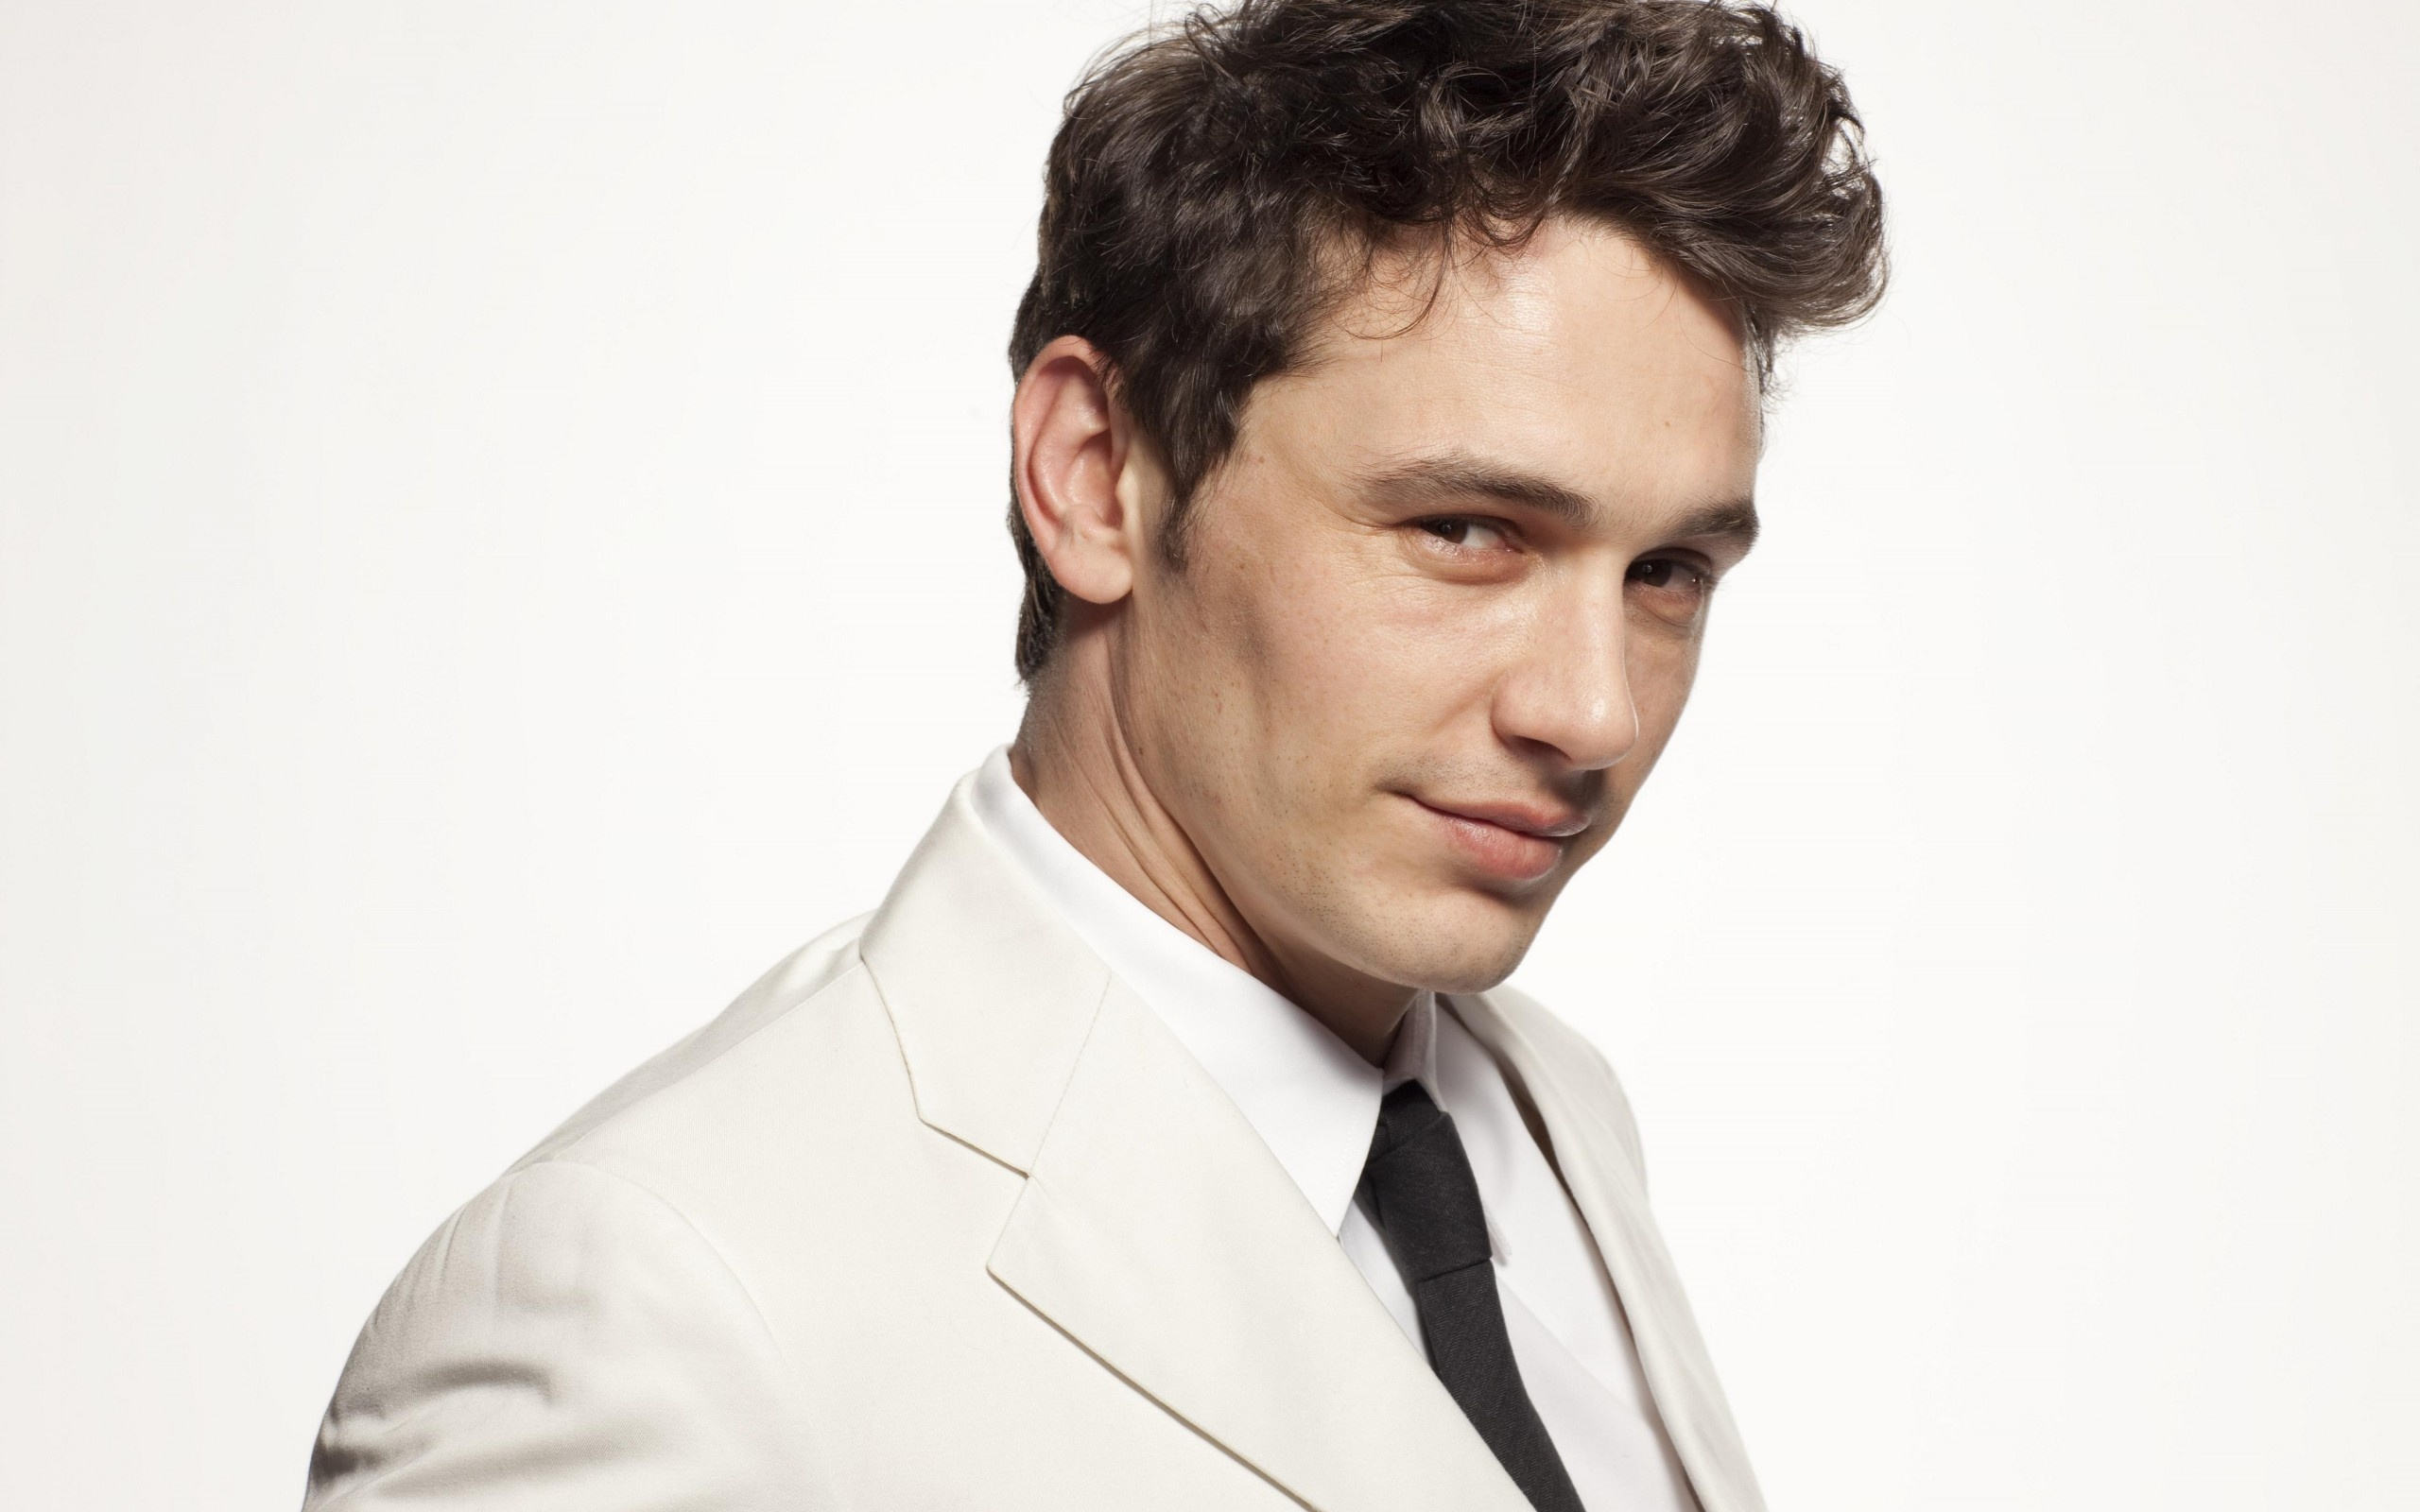 james franco wallpaper 42854